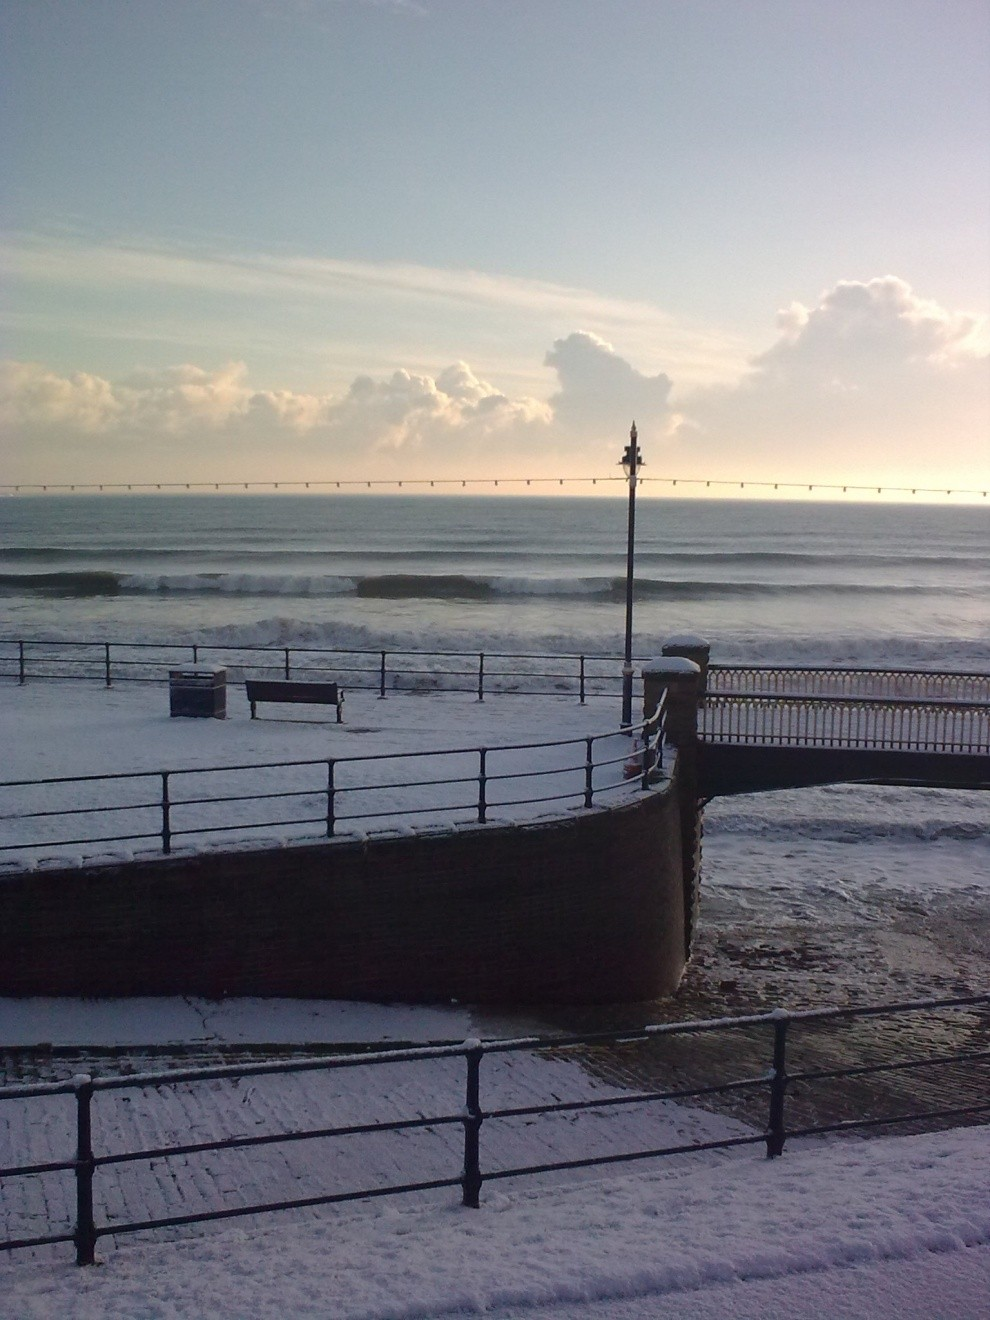 Nikyo 's photo of Filey